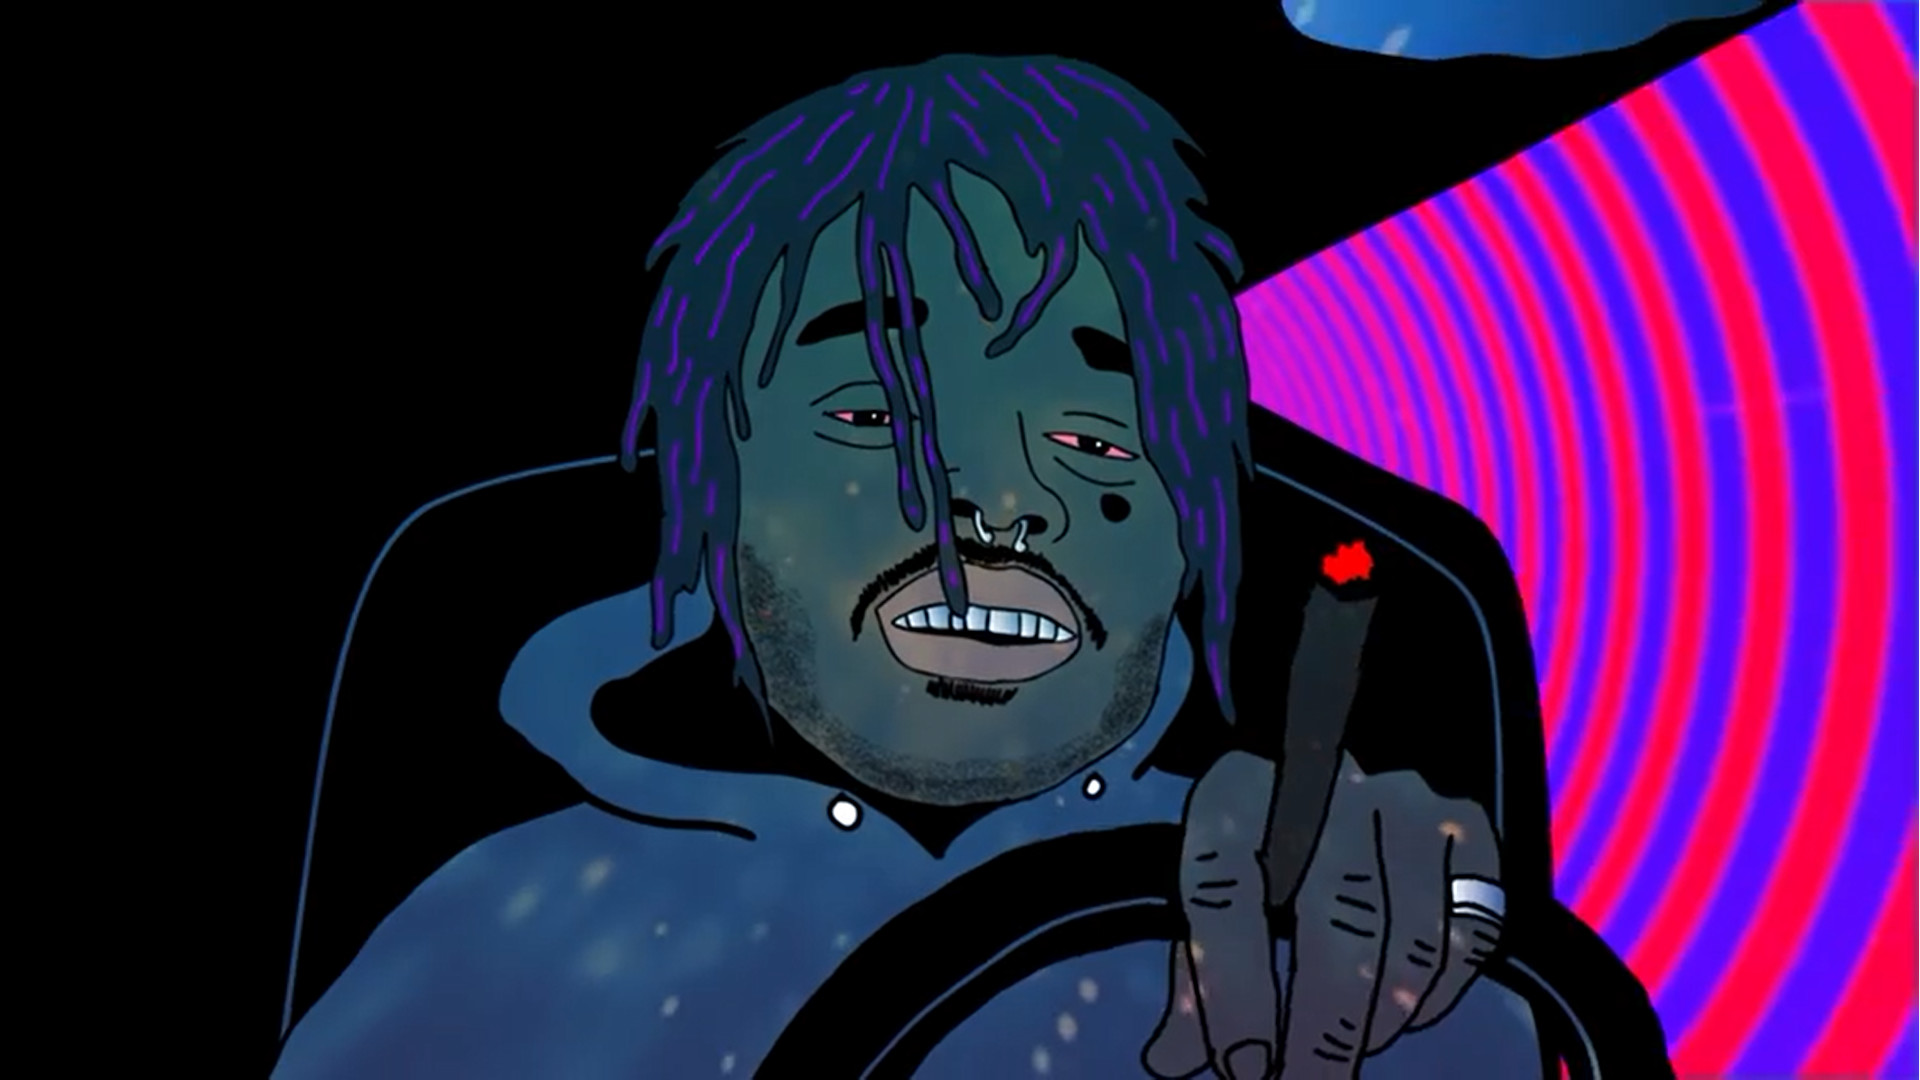 Download Lil Uzi Vert Wallpaper Hd Backgrounds Download Itl Cat But are you really about it? download lil uzi vert wallpaper hd